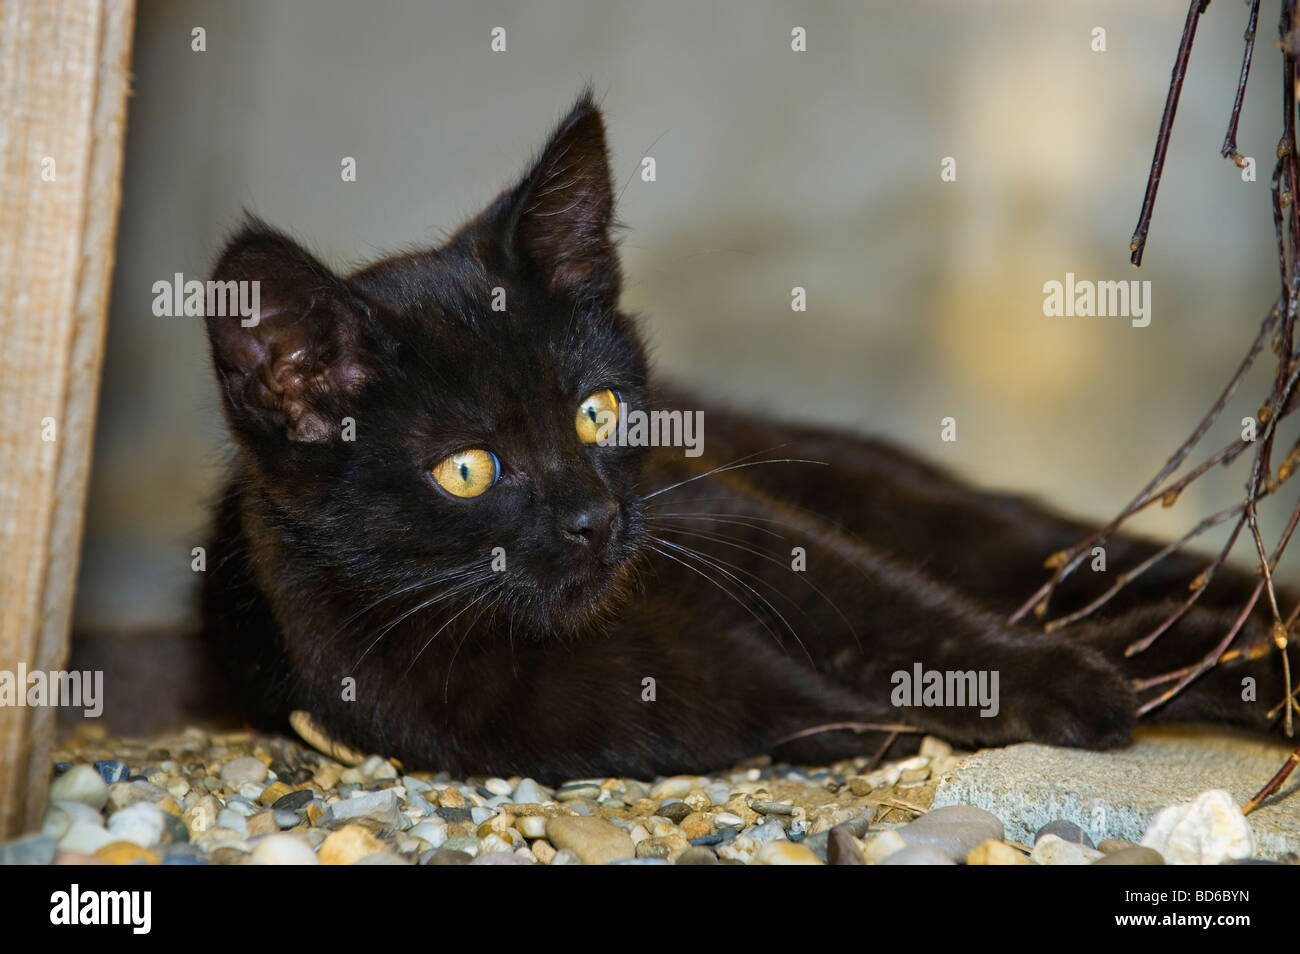 young black cat with mysterious yellow EYES kitten outdoor lay laying look looking animal cat kitten evening light - Stock Image